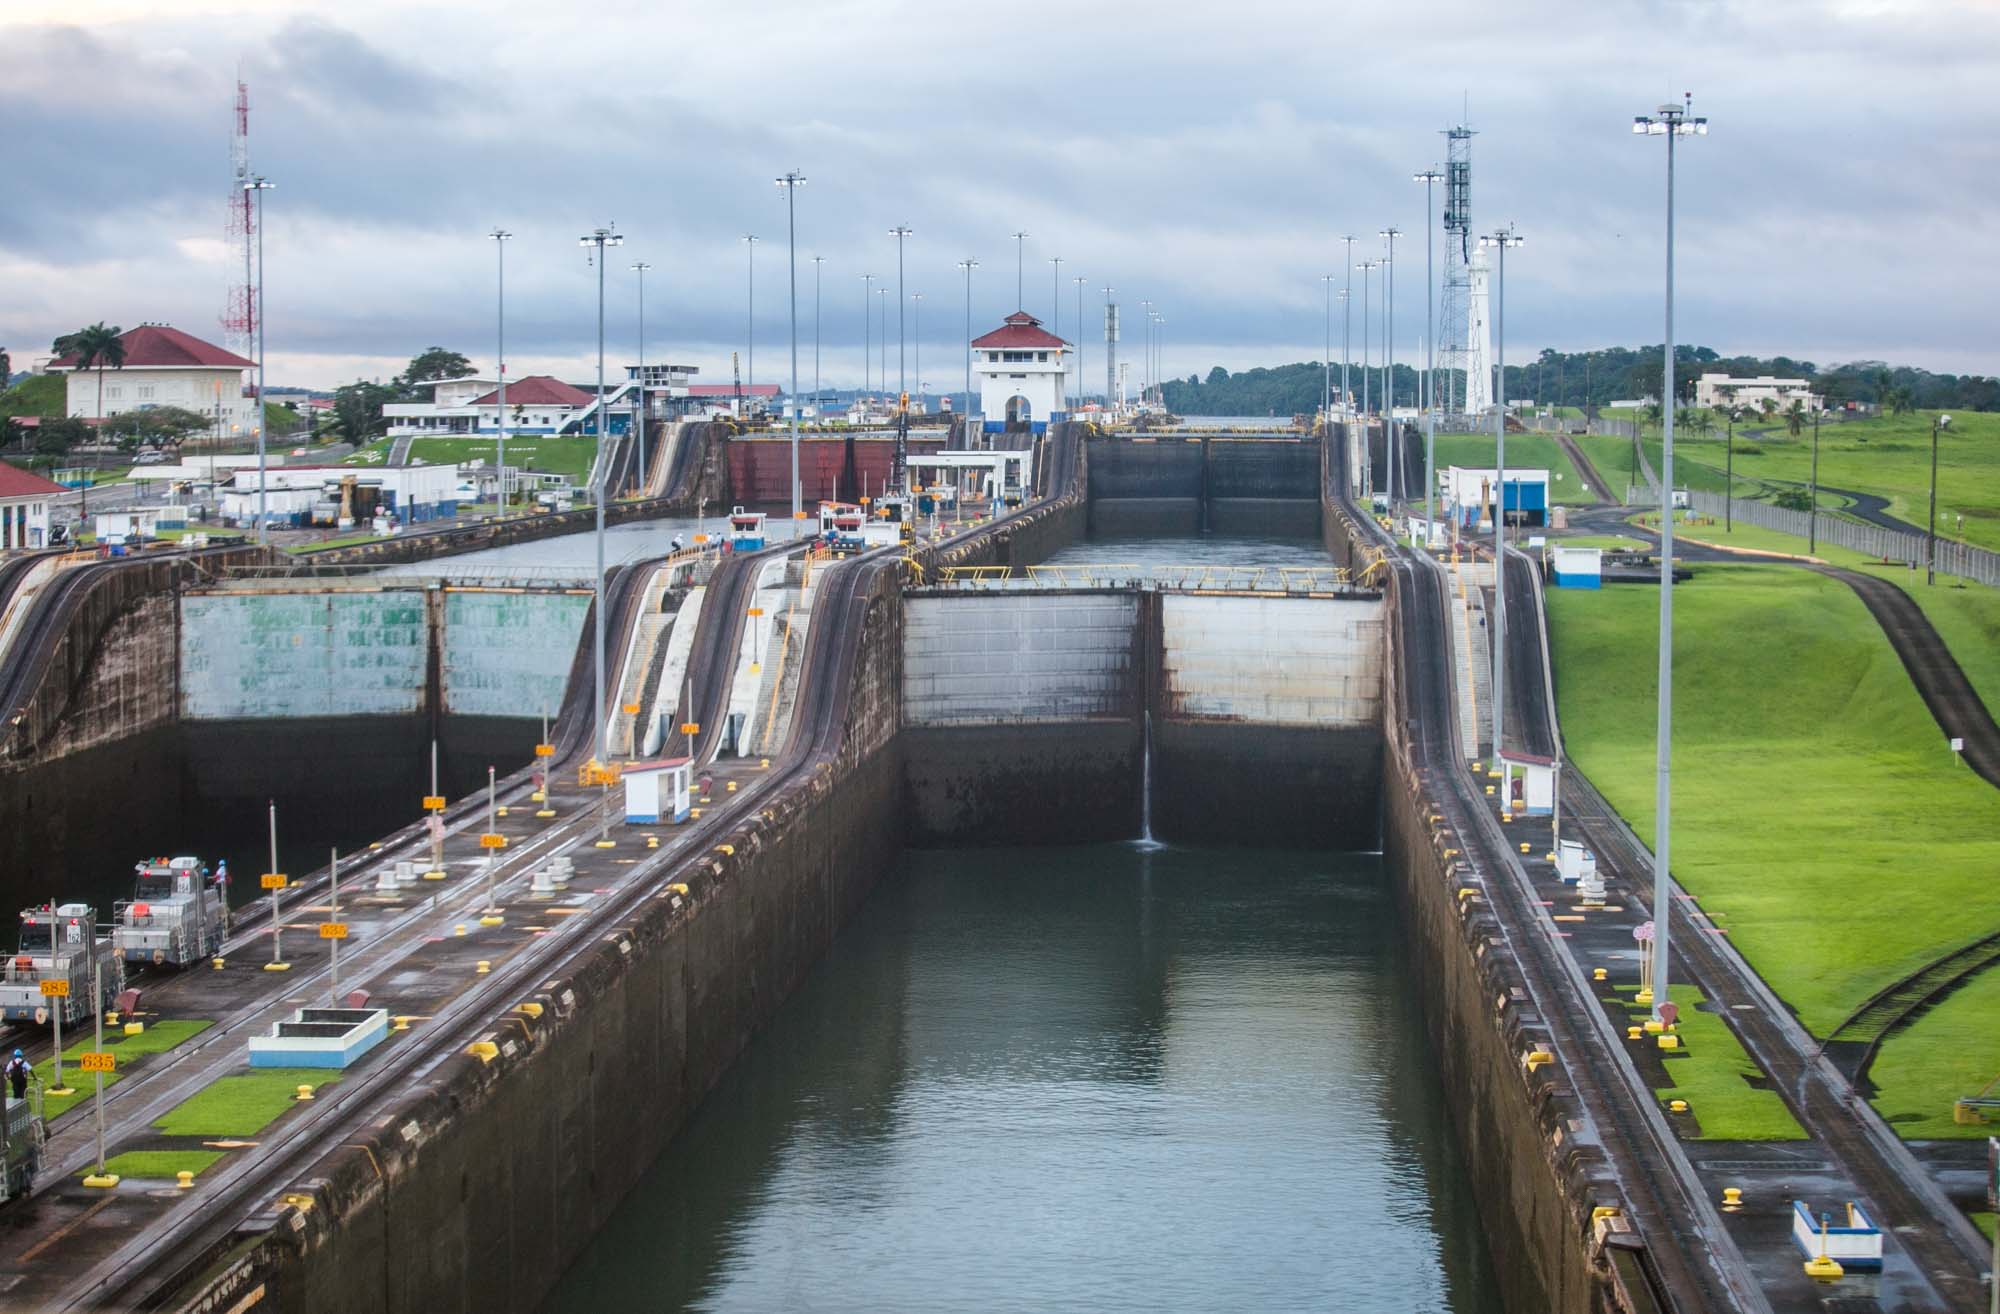 Panama Canal view toward first lock